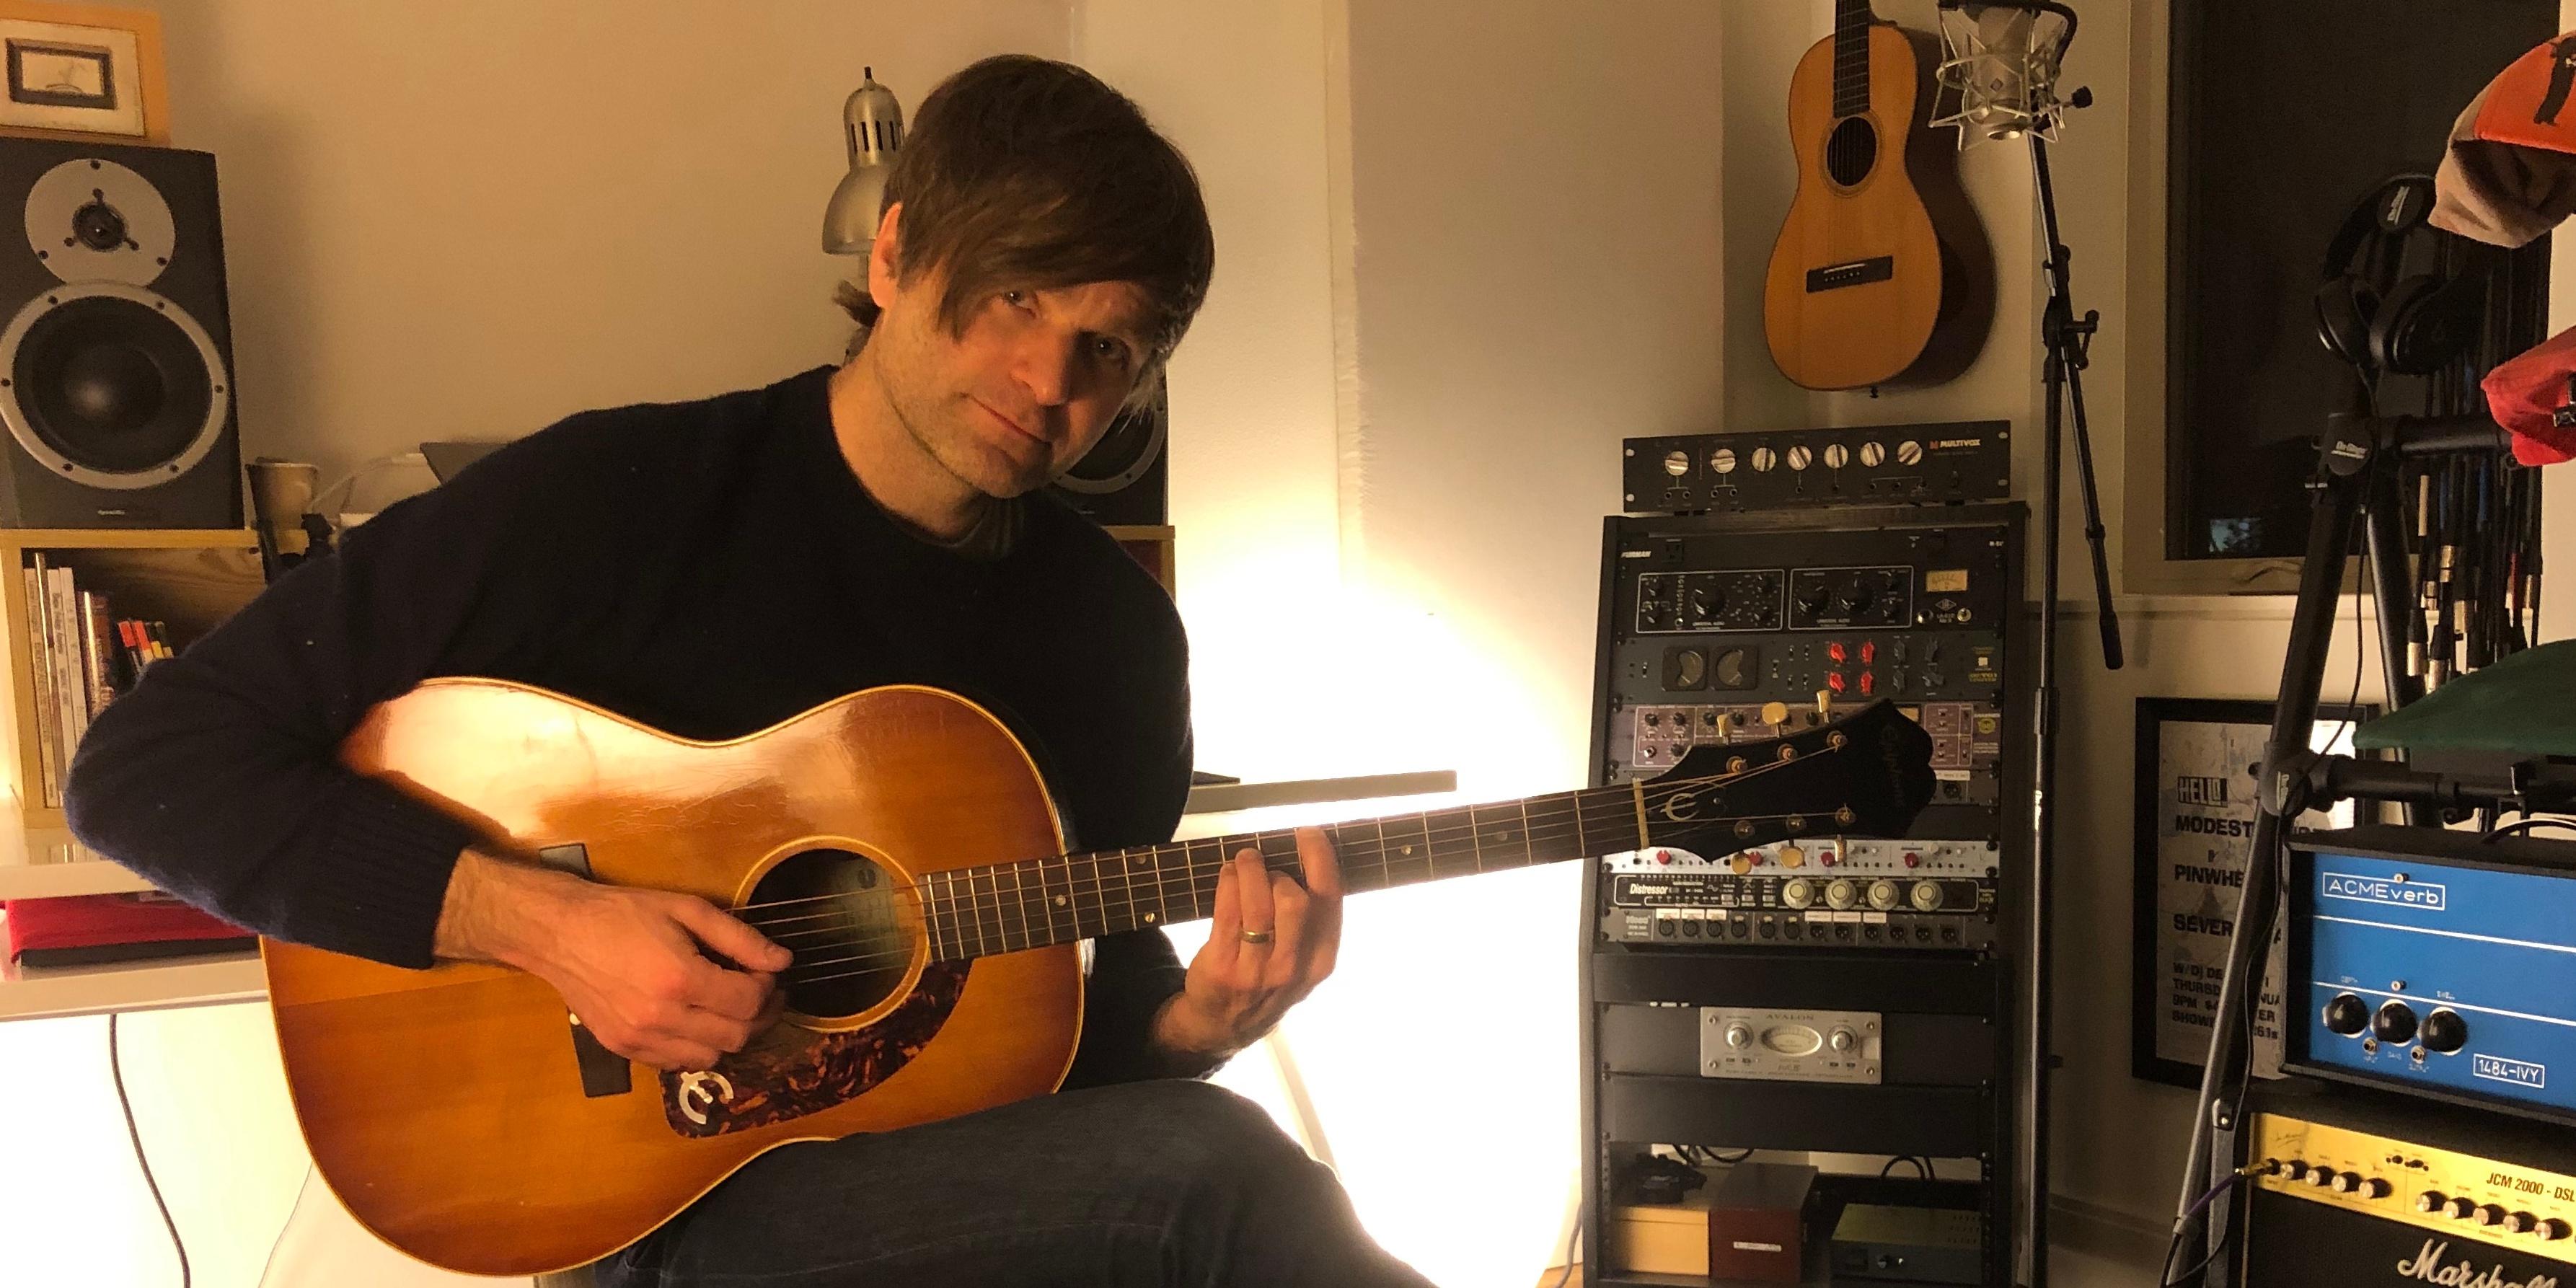 """I'd like to return the favor by coming to you."" Ben Gibbard to stream online concerts for fans"